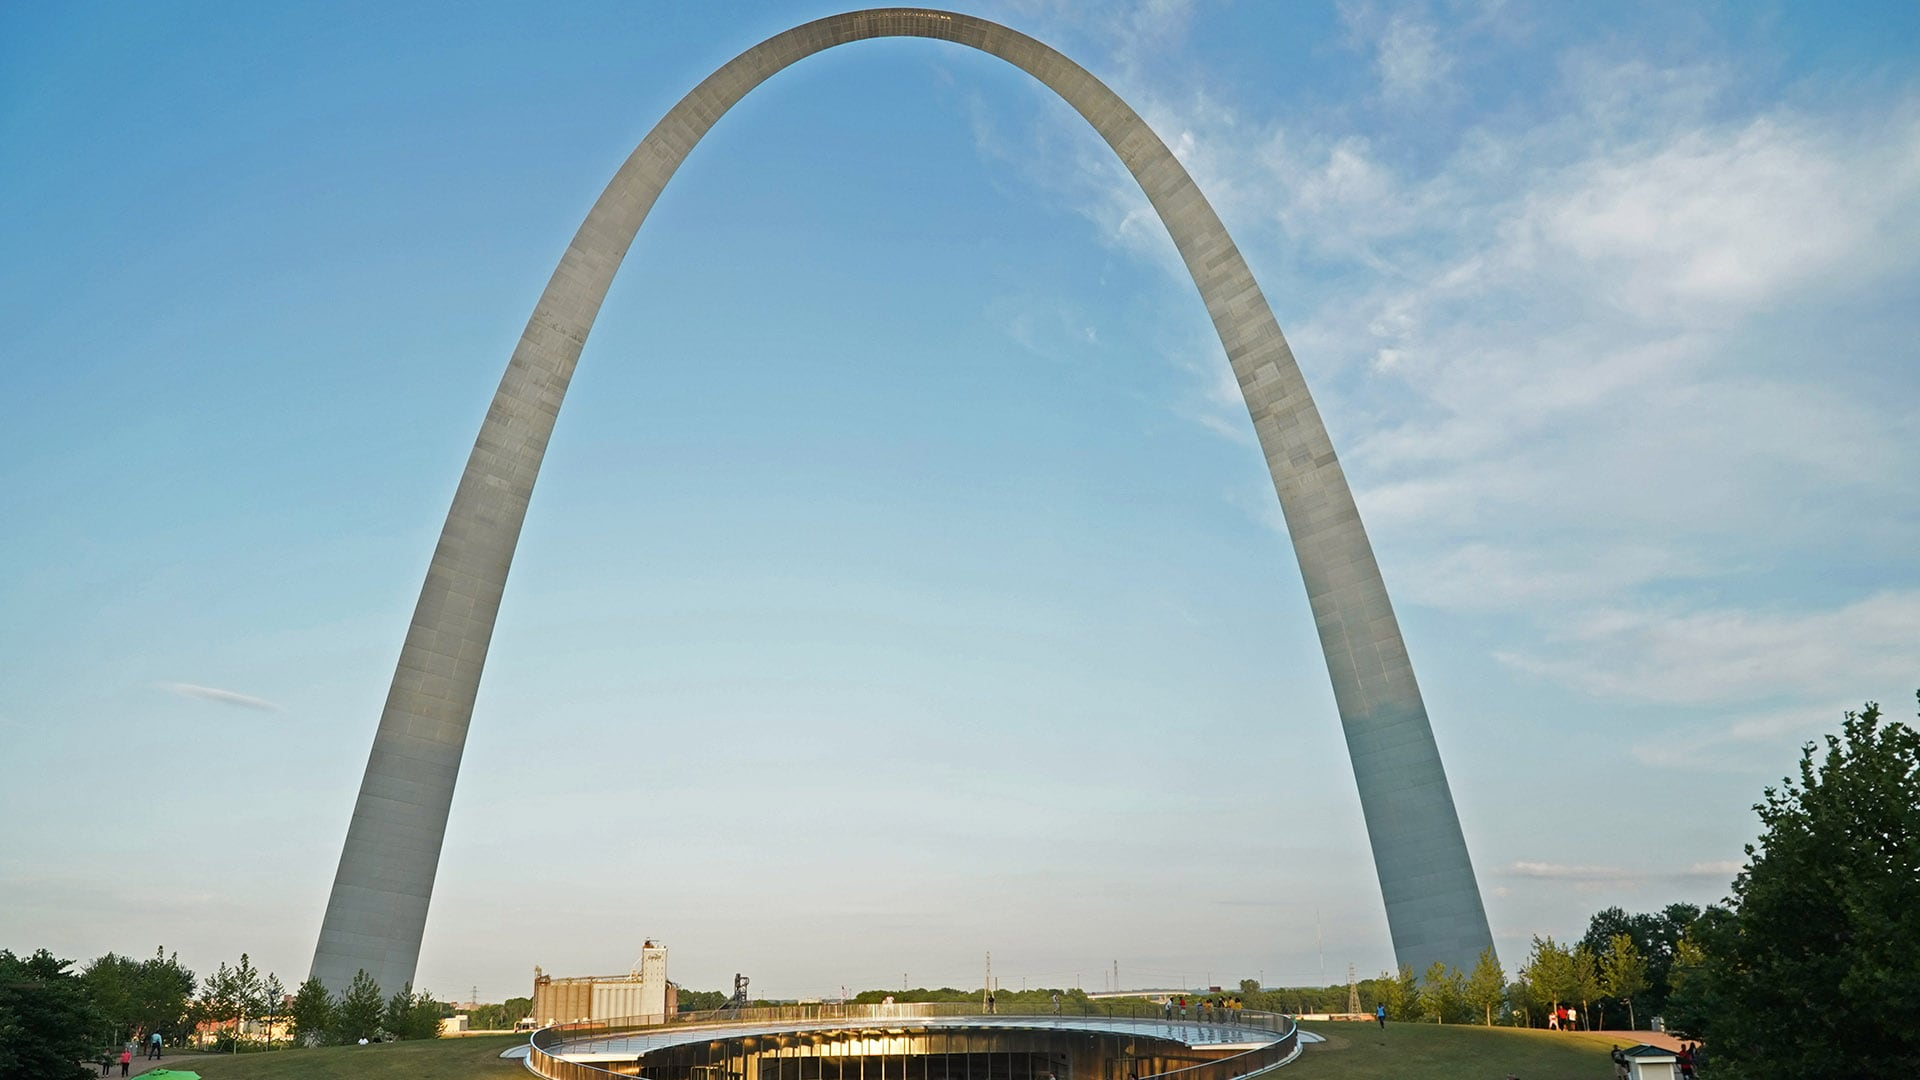 Architect Eero Saarinen created the Arch after winning a national competition to design the monument for St. Louis in 1947.